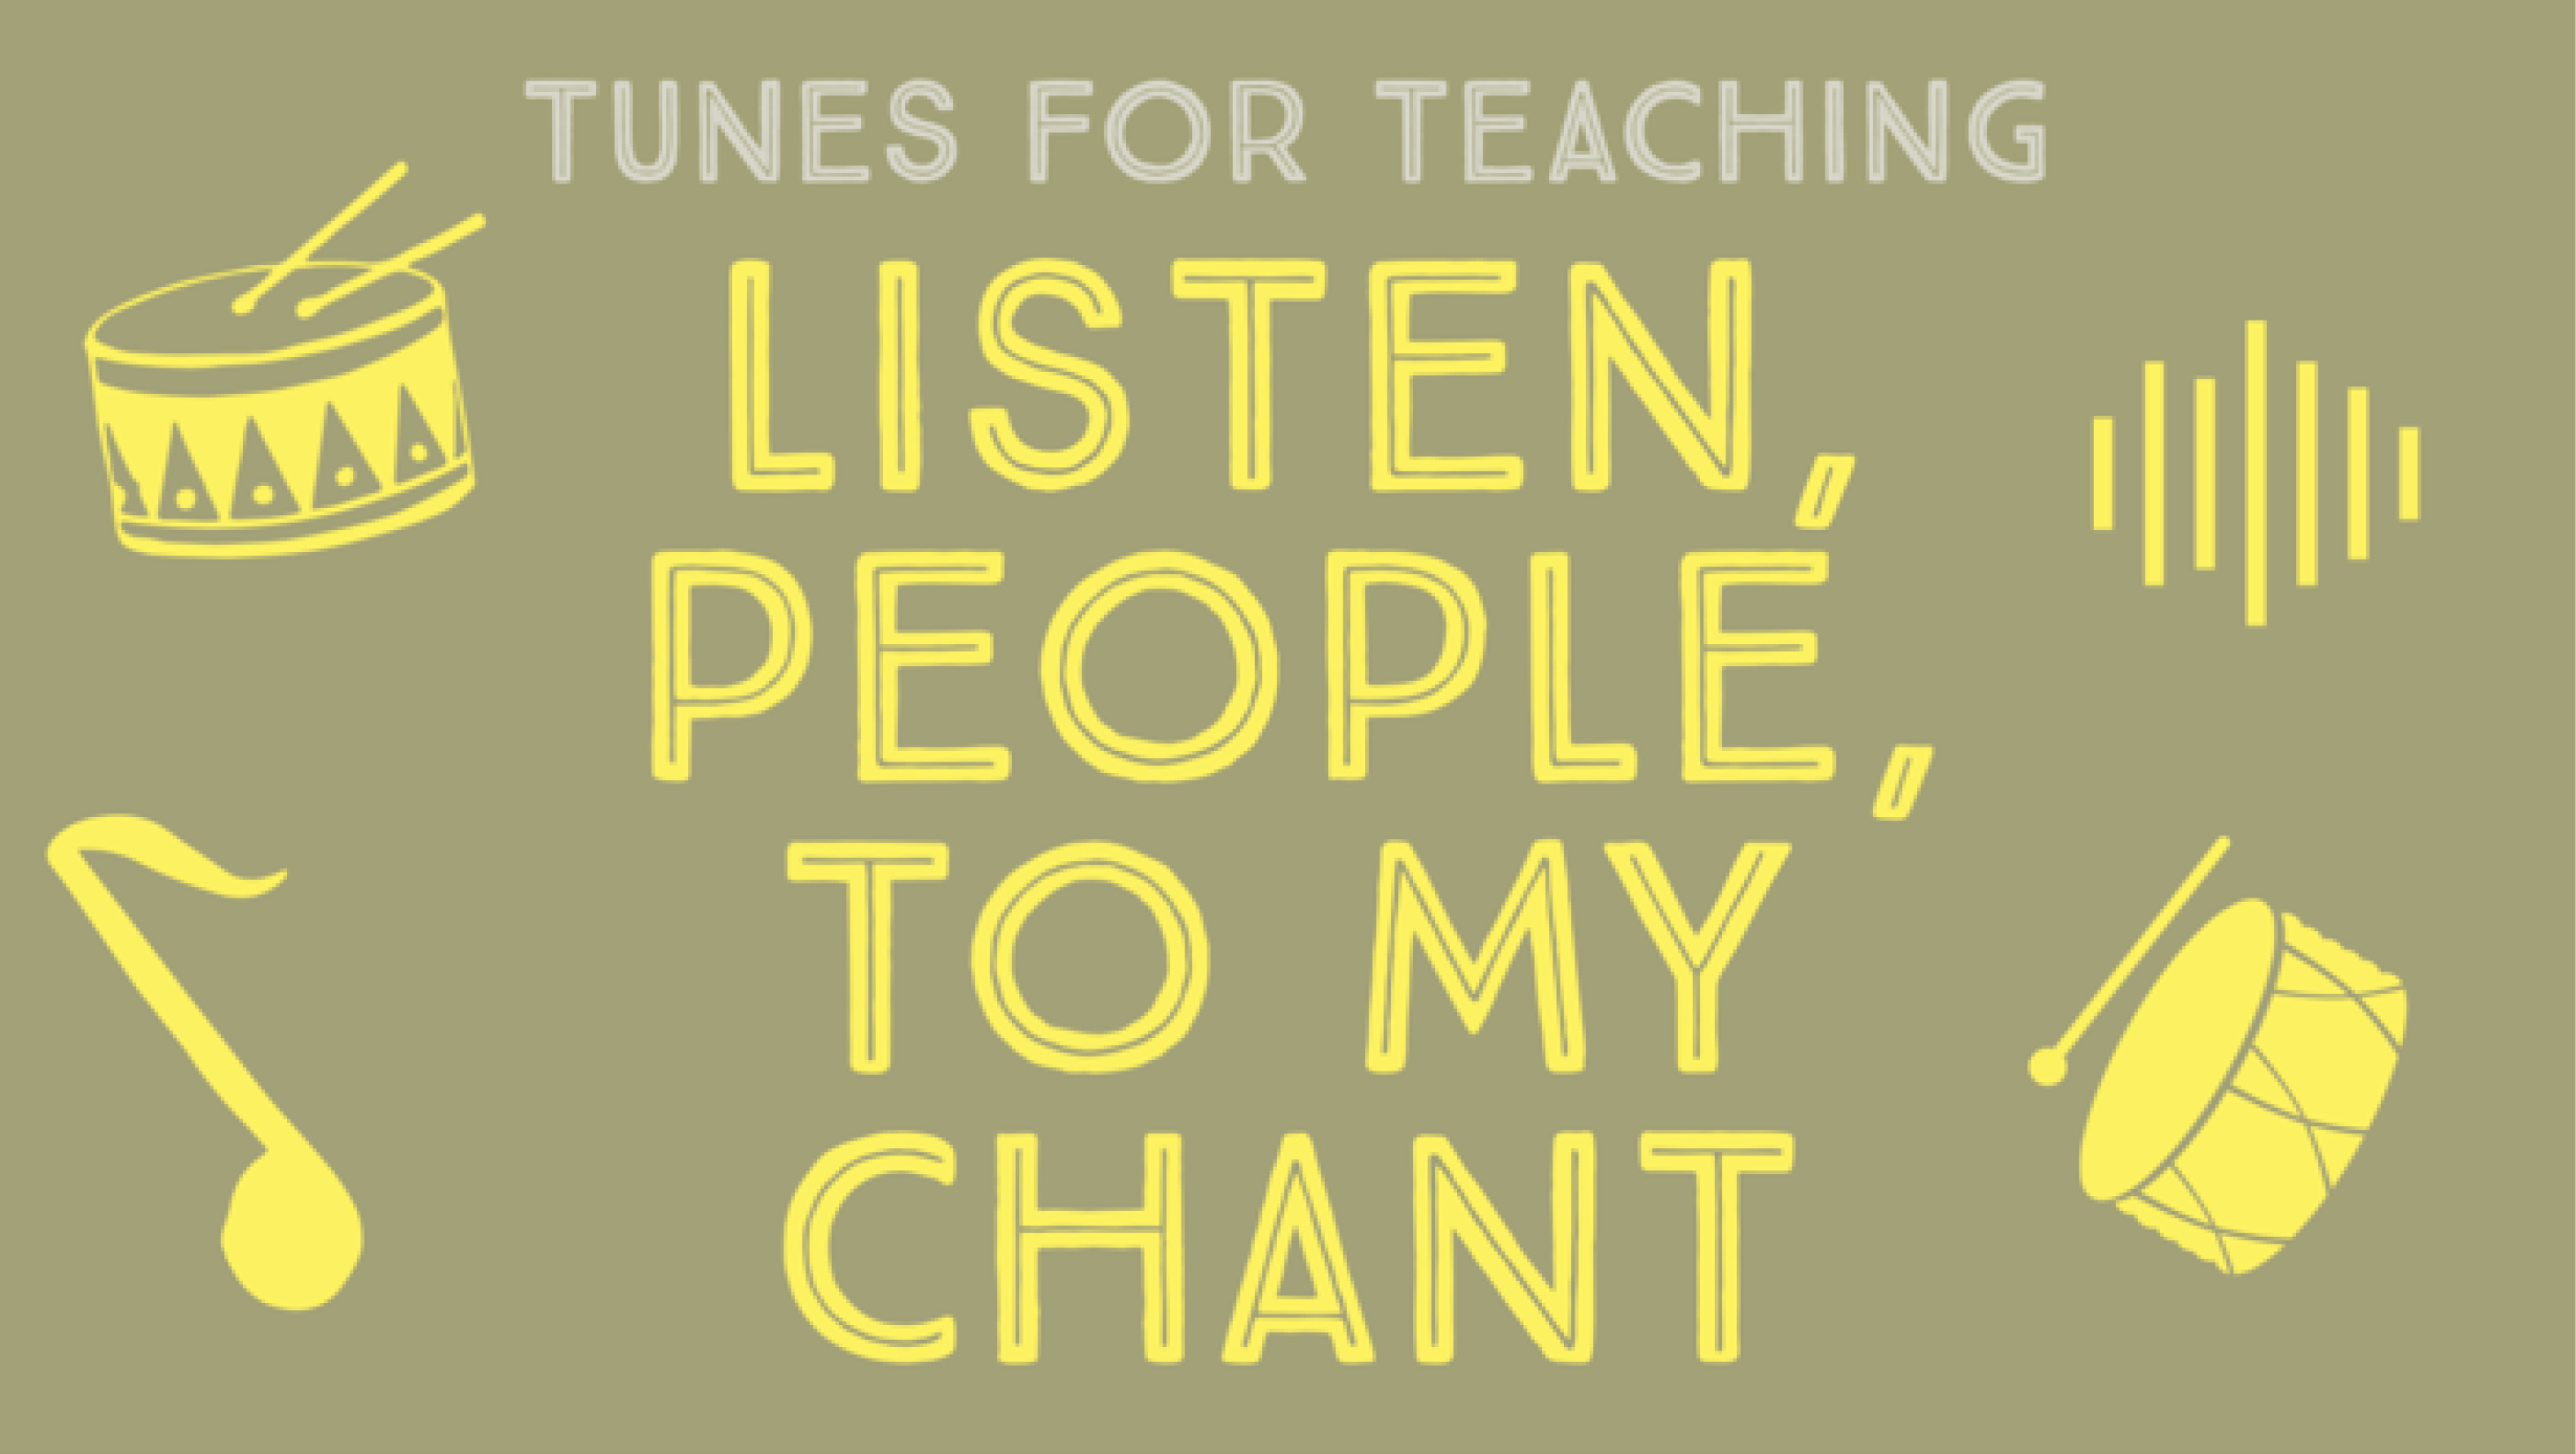 Listen, People, to My Chant